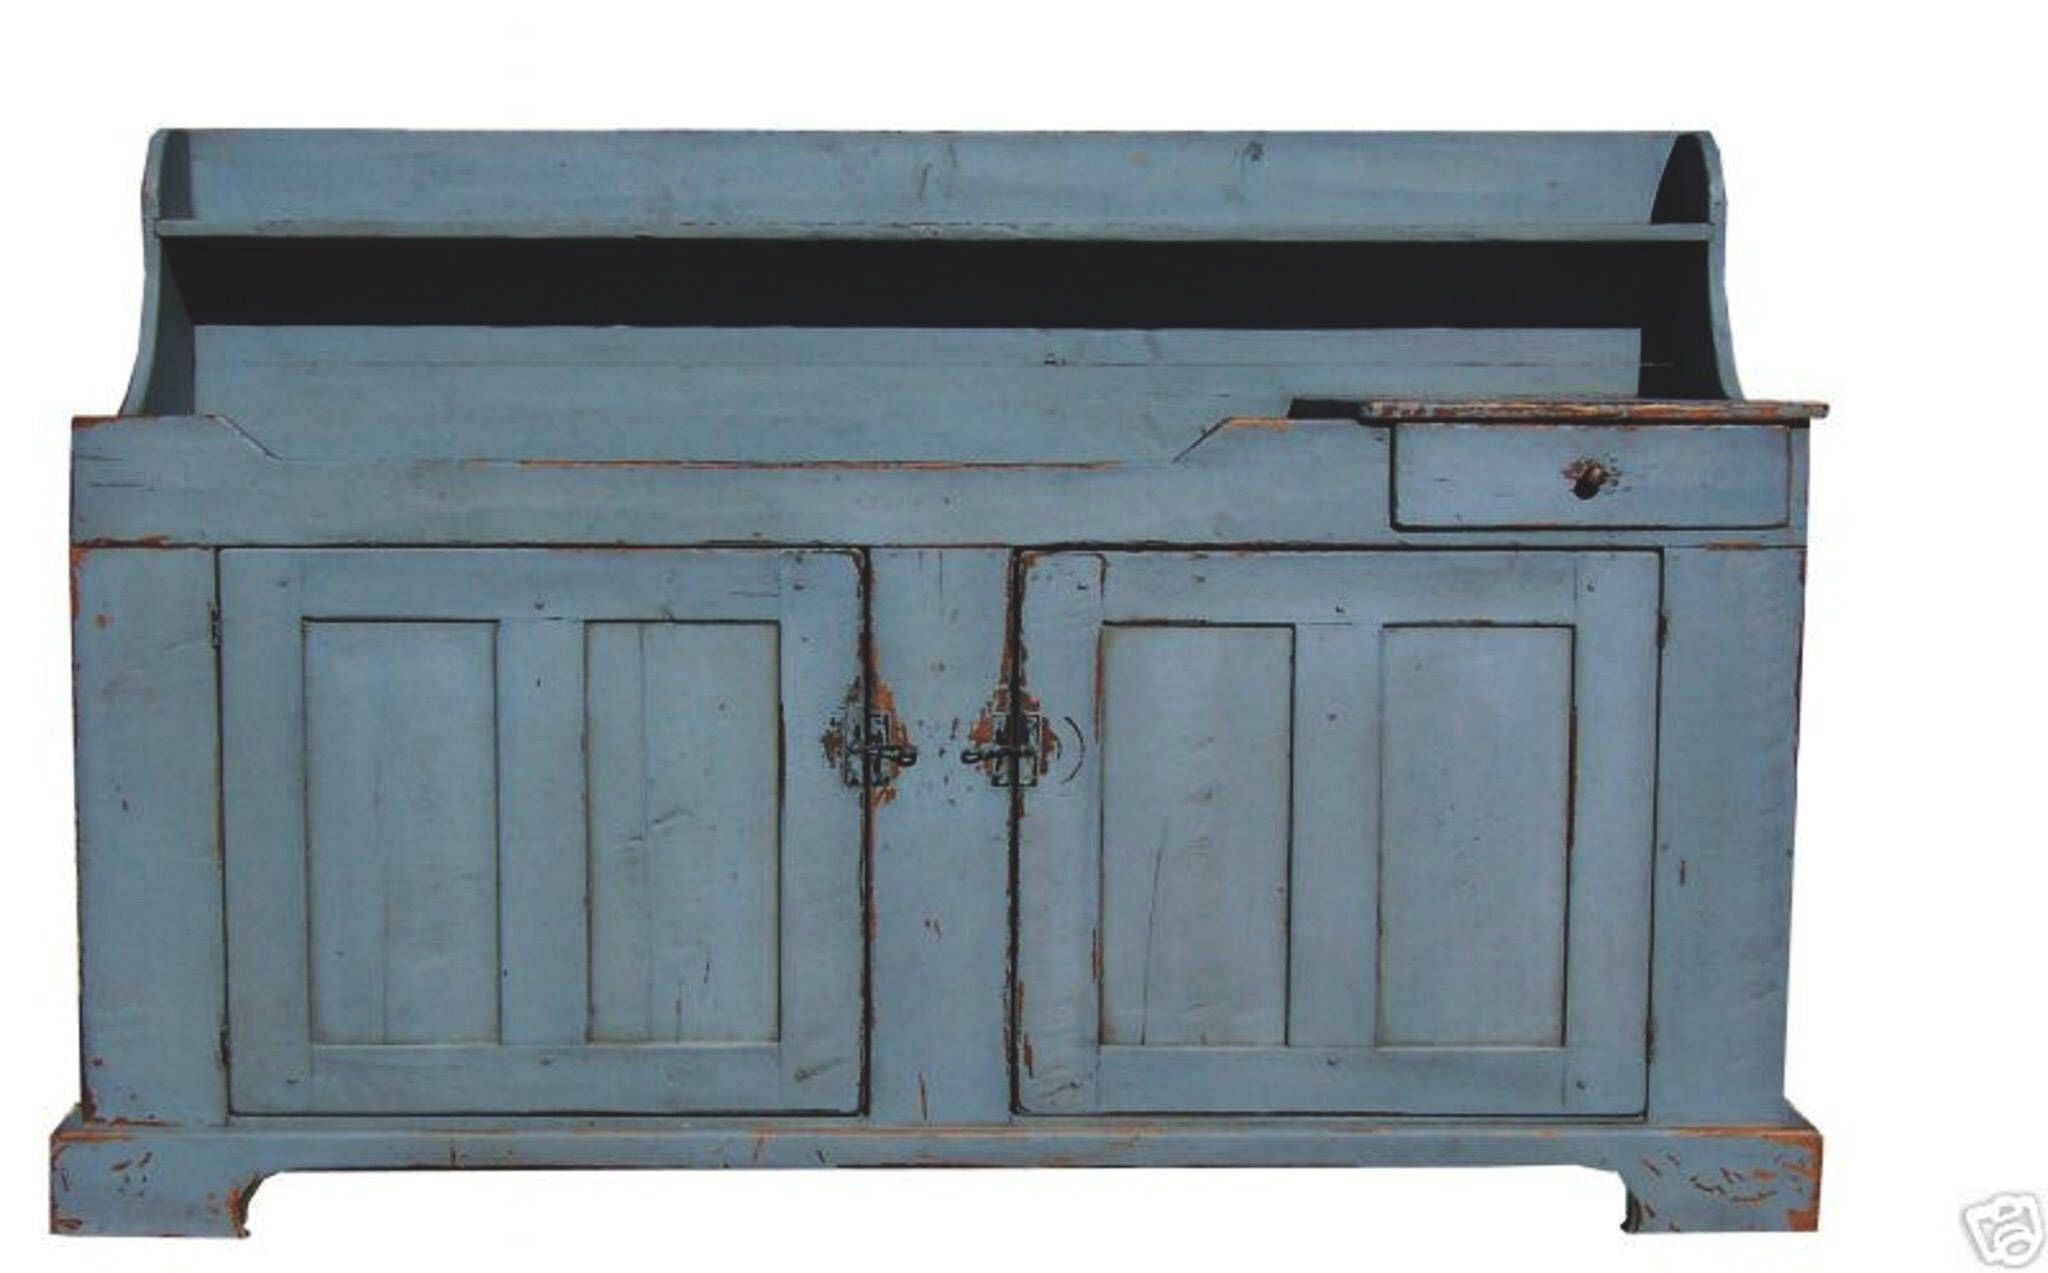 Bathroom Vanity Rustic Vanity Primitive Vanity In A Custom Painted Distressed Aged Antique Old Painted Finish For Your Farmhouse Home Rustic Bathroom Furniture Dry Sink Primitive Bathrooms